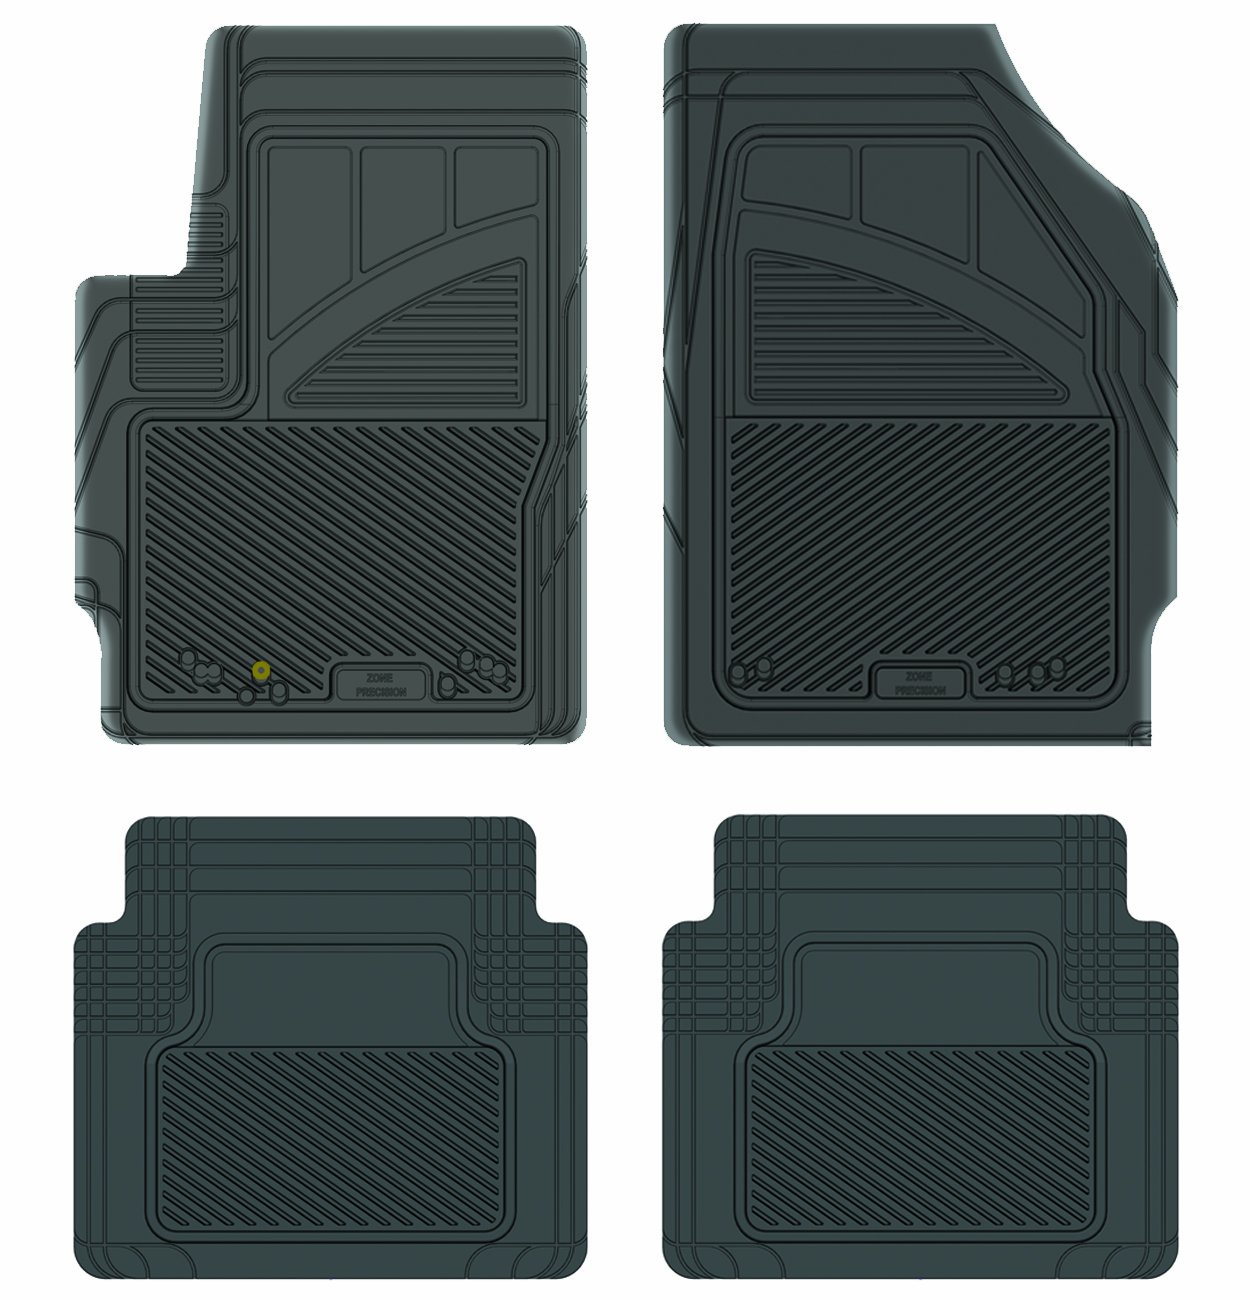 Black 17508 Koolatron Pants Saver Custom Fit 4 Piece All Weather Car Mat for Select Mazda Tribute Models